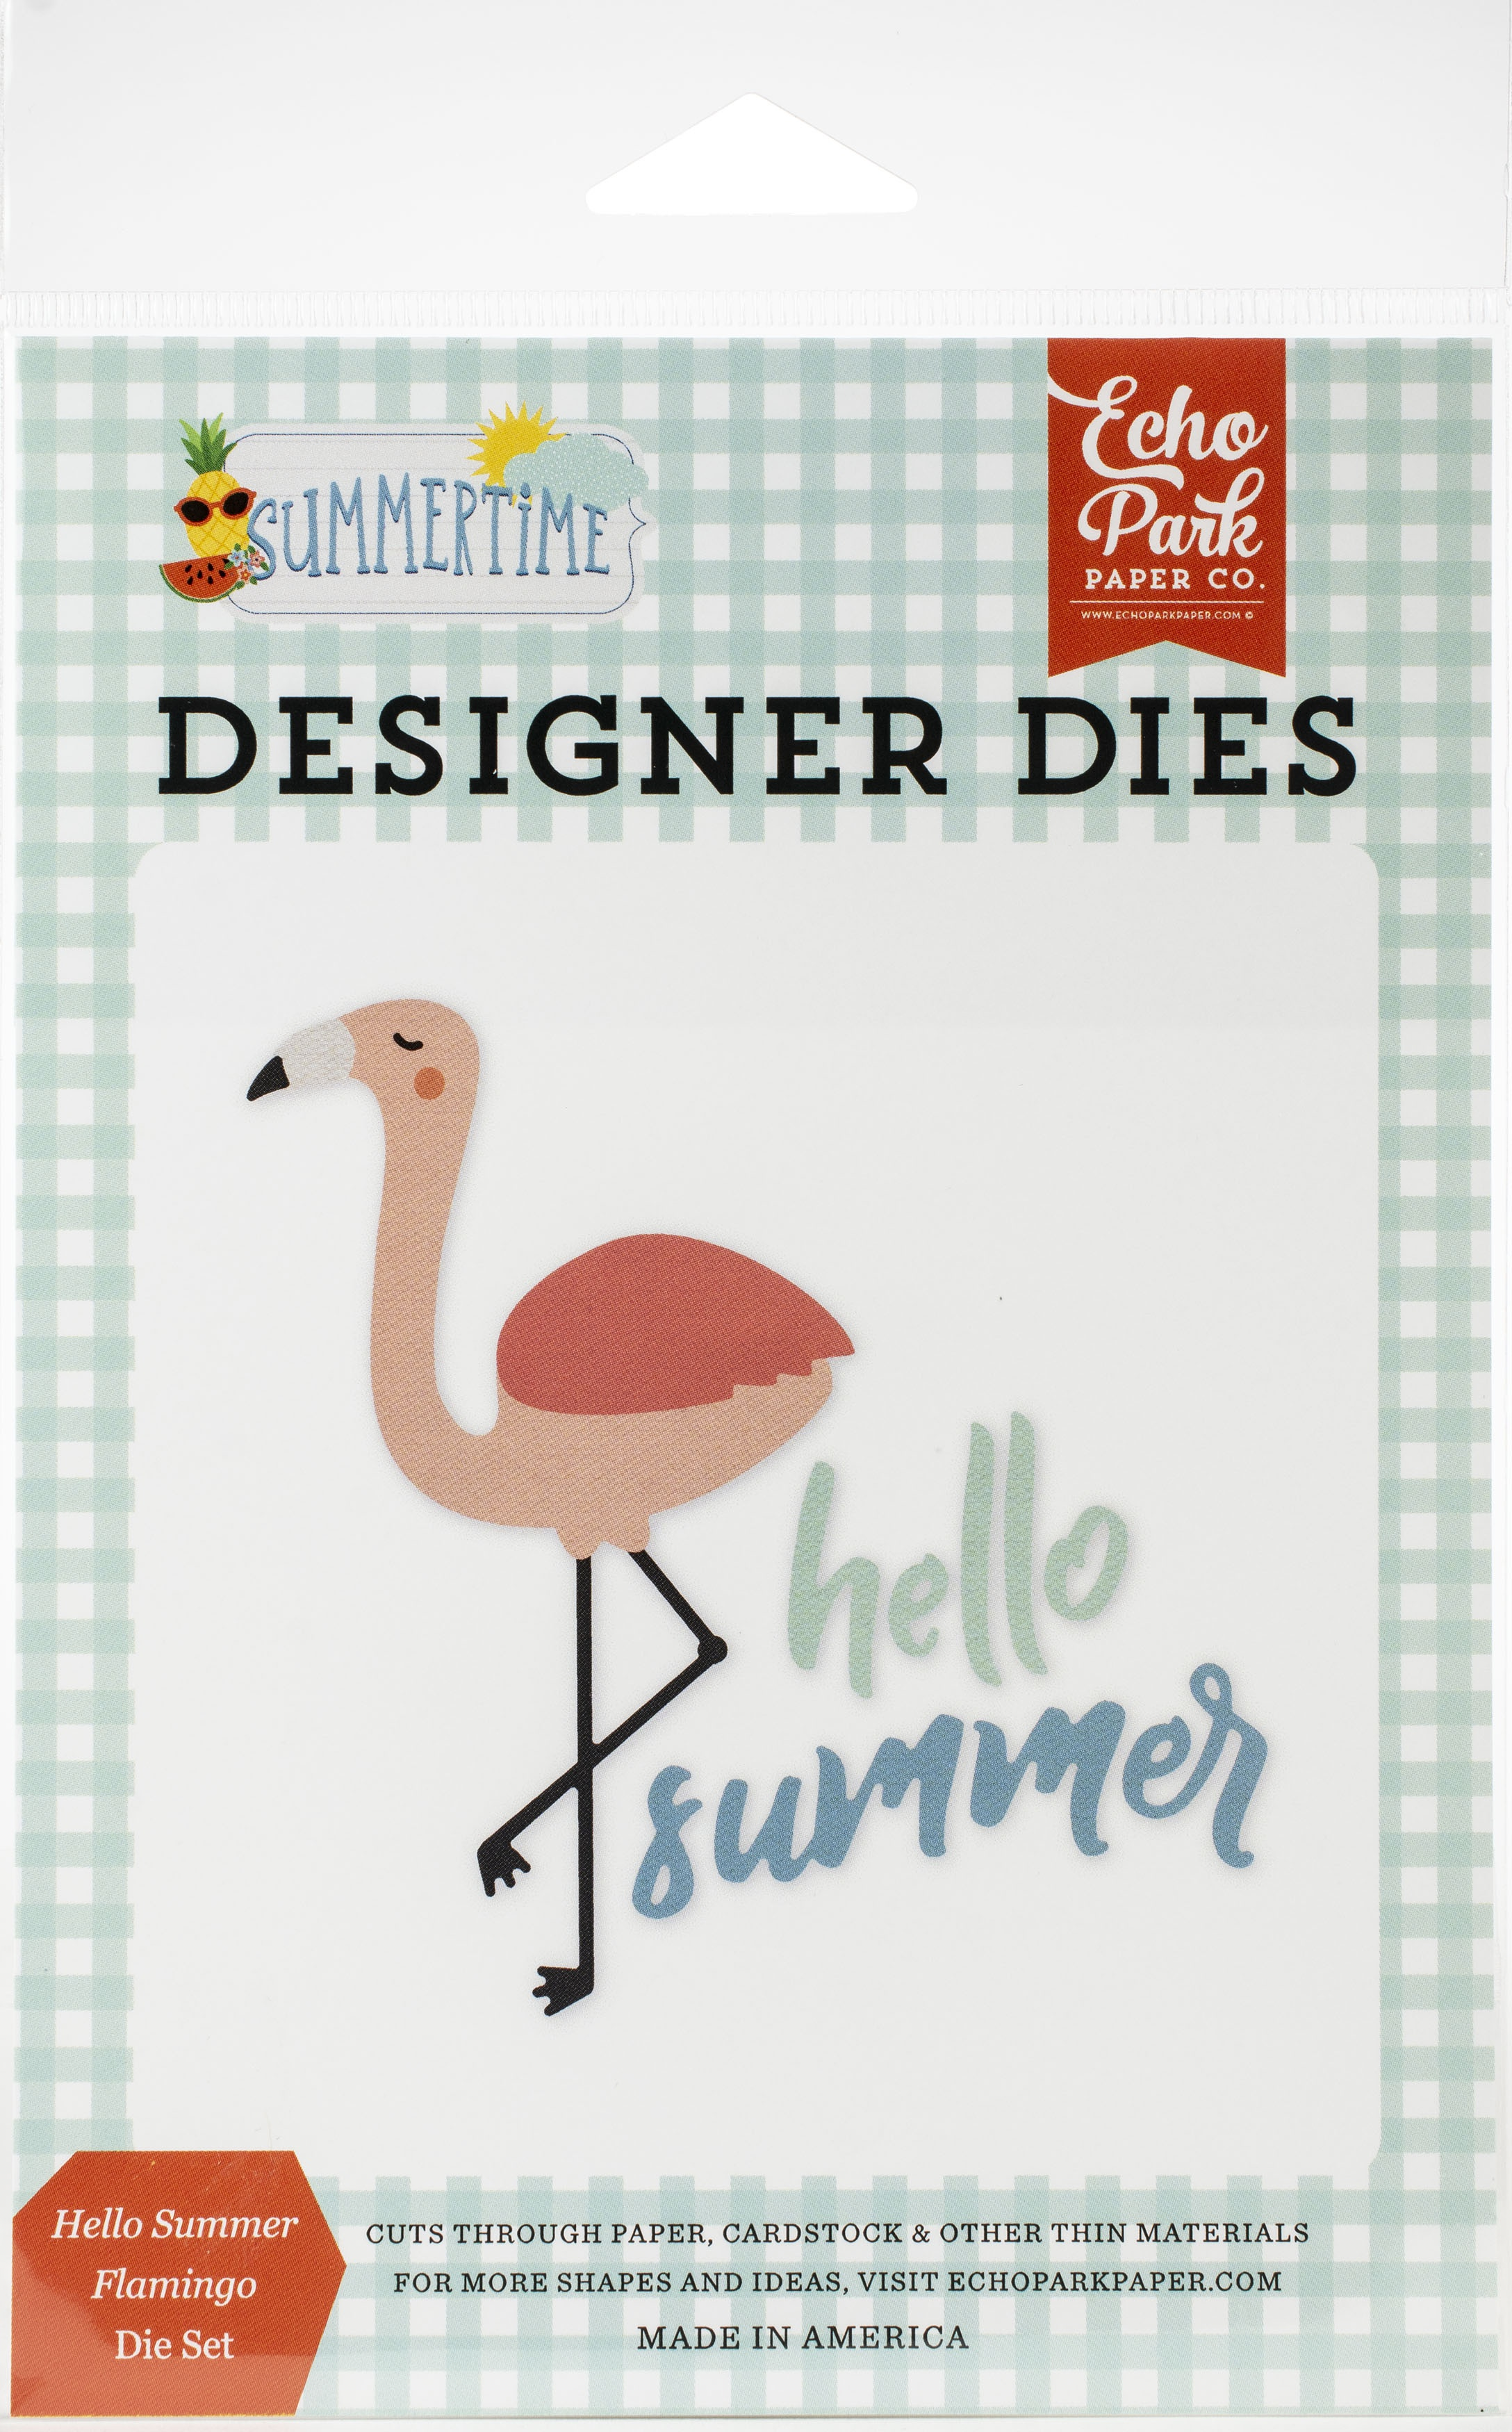 Echo Park Dies-Hello Summer Flamingo, Summertime